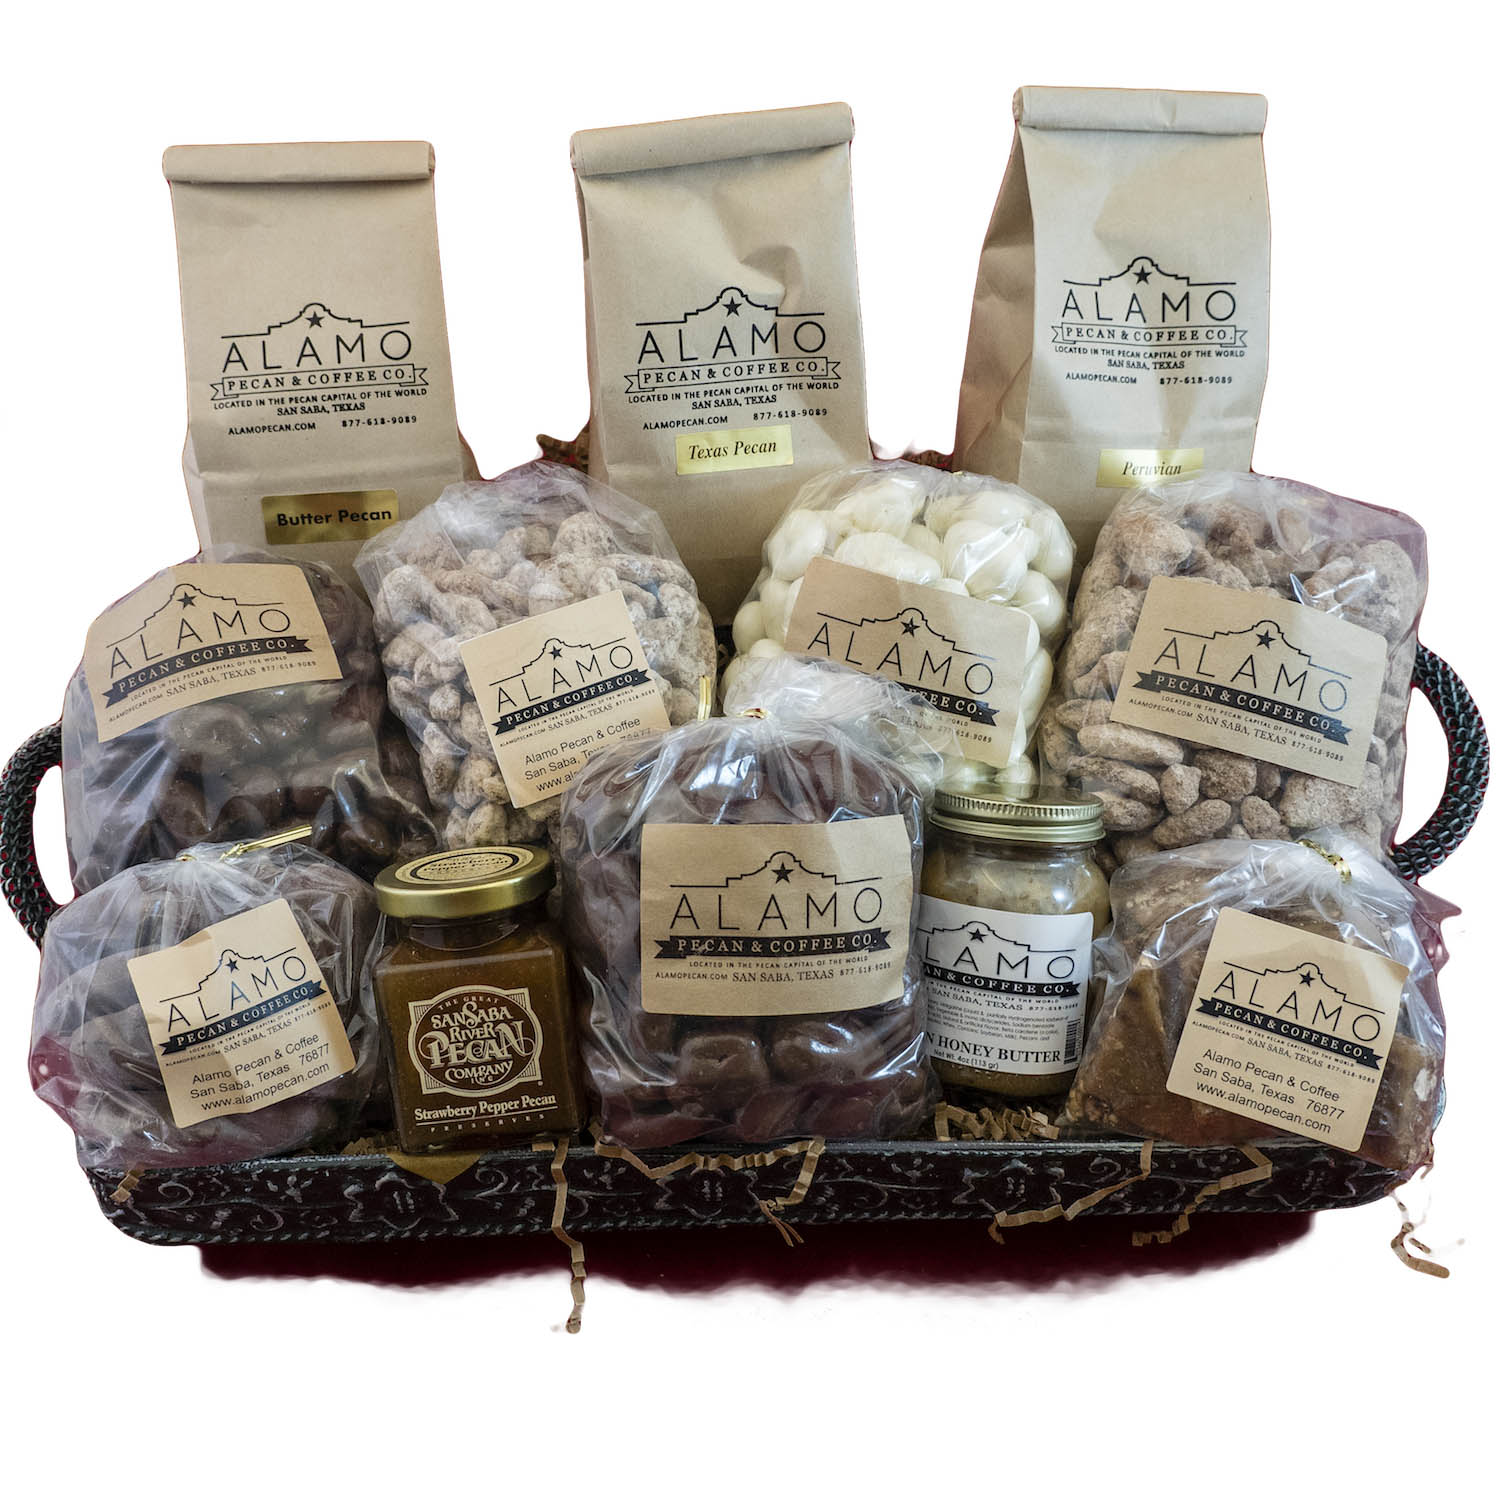 Make Your Mail Order Holiday Gifts Alamo Pecan Special